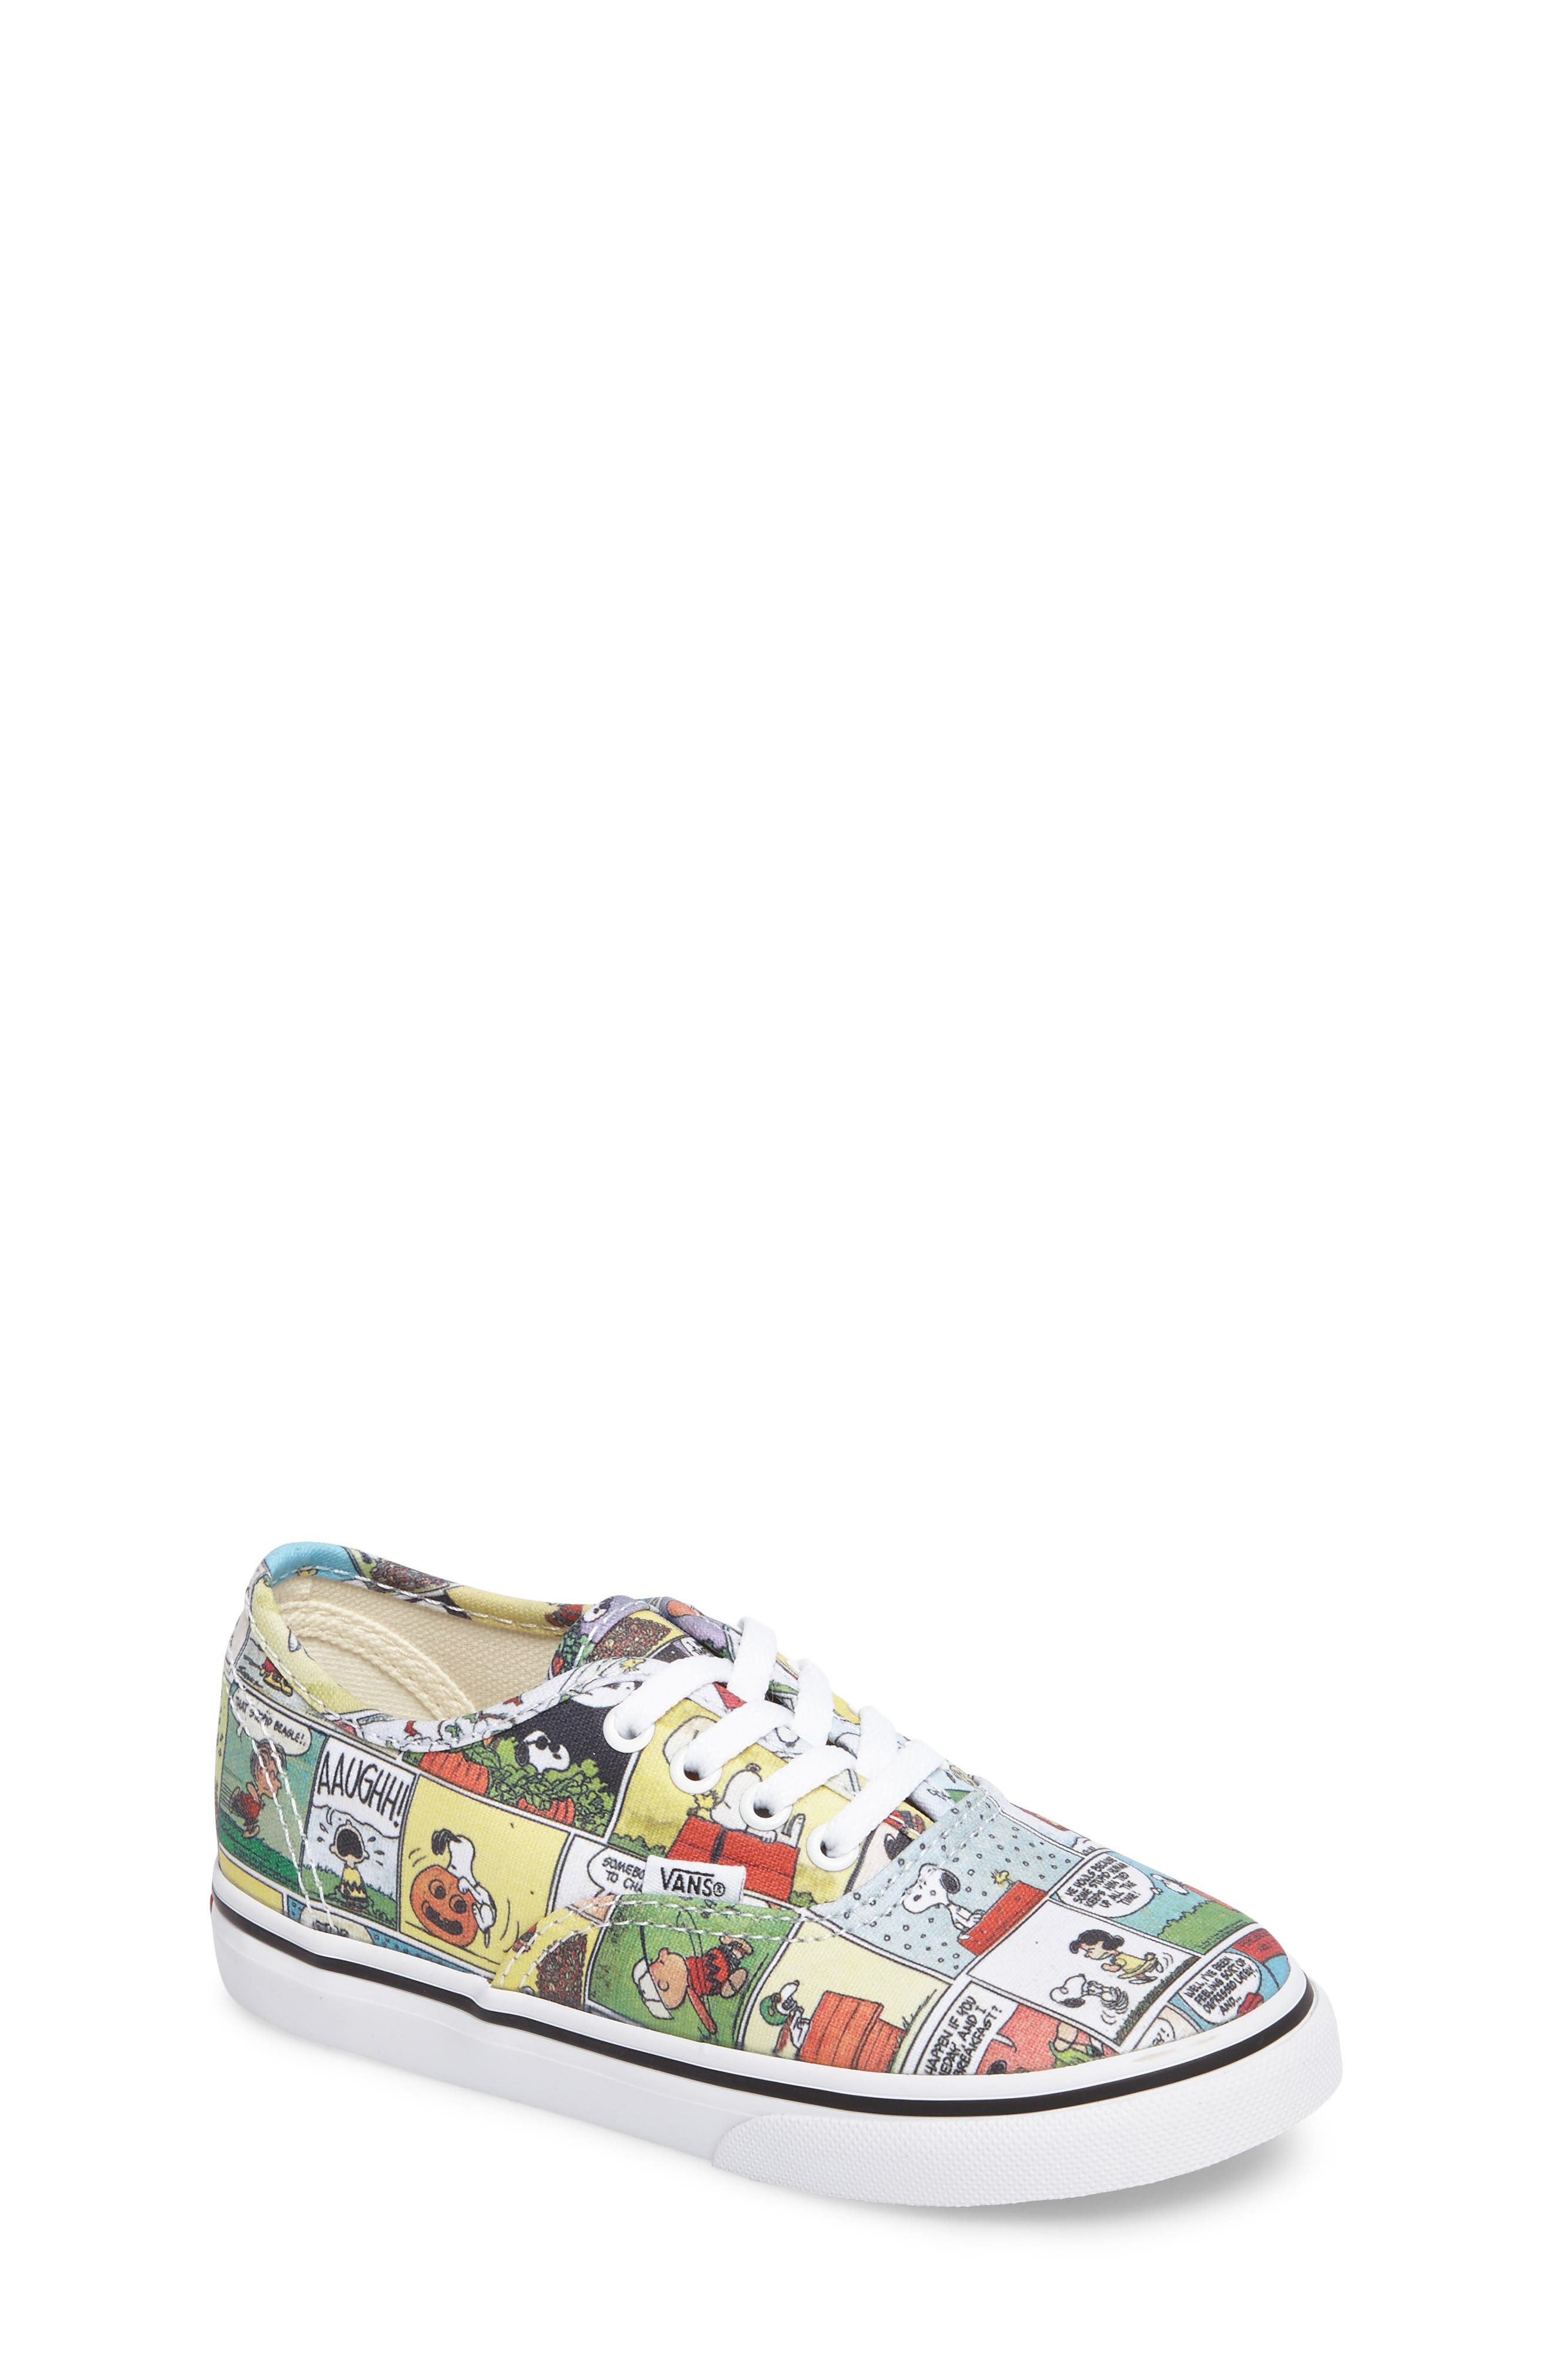 x Peanuts Authentic Low Top Sneaker,                             Main thumbnail 1, color,                             001